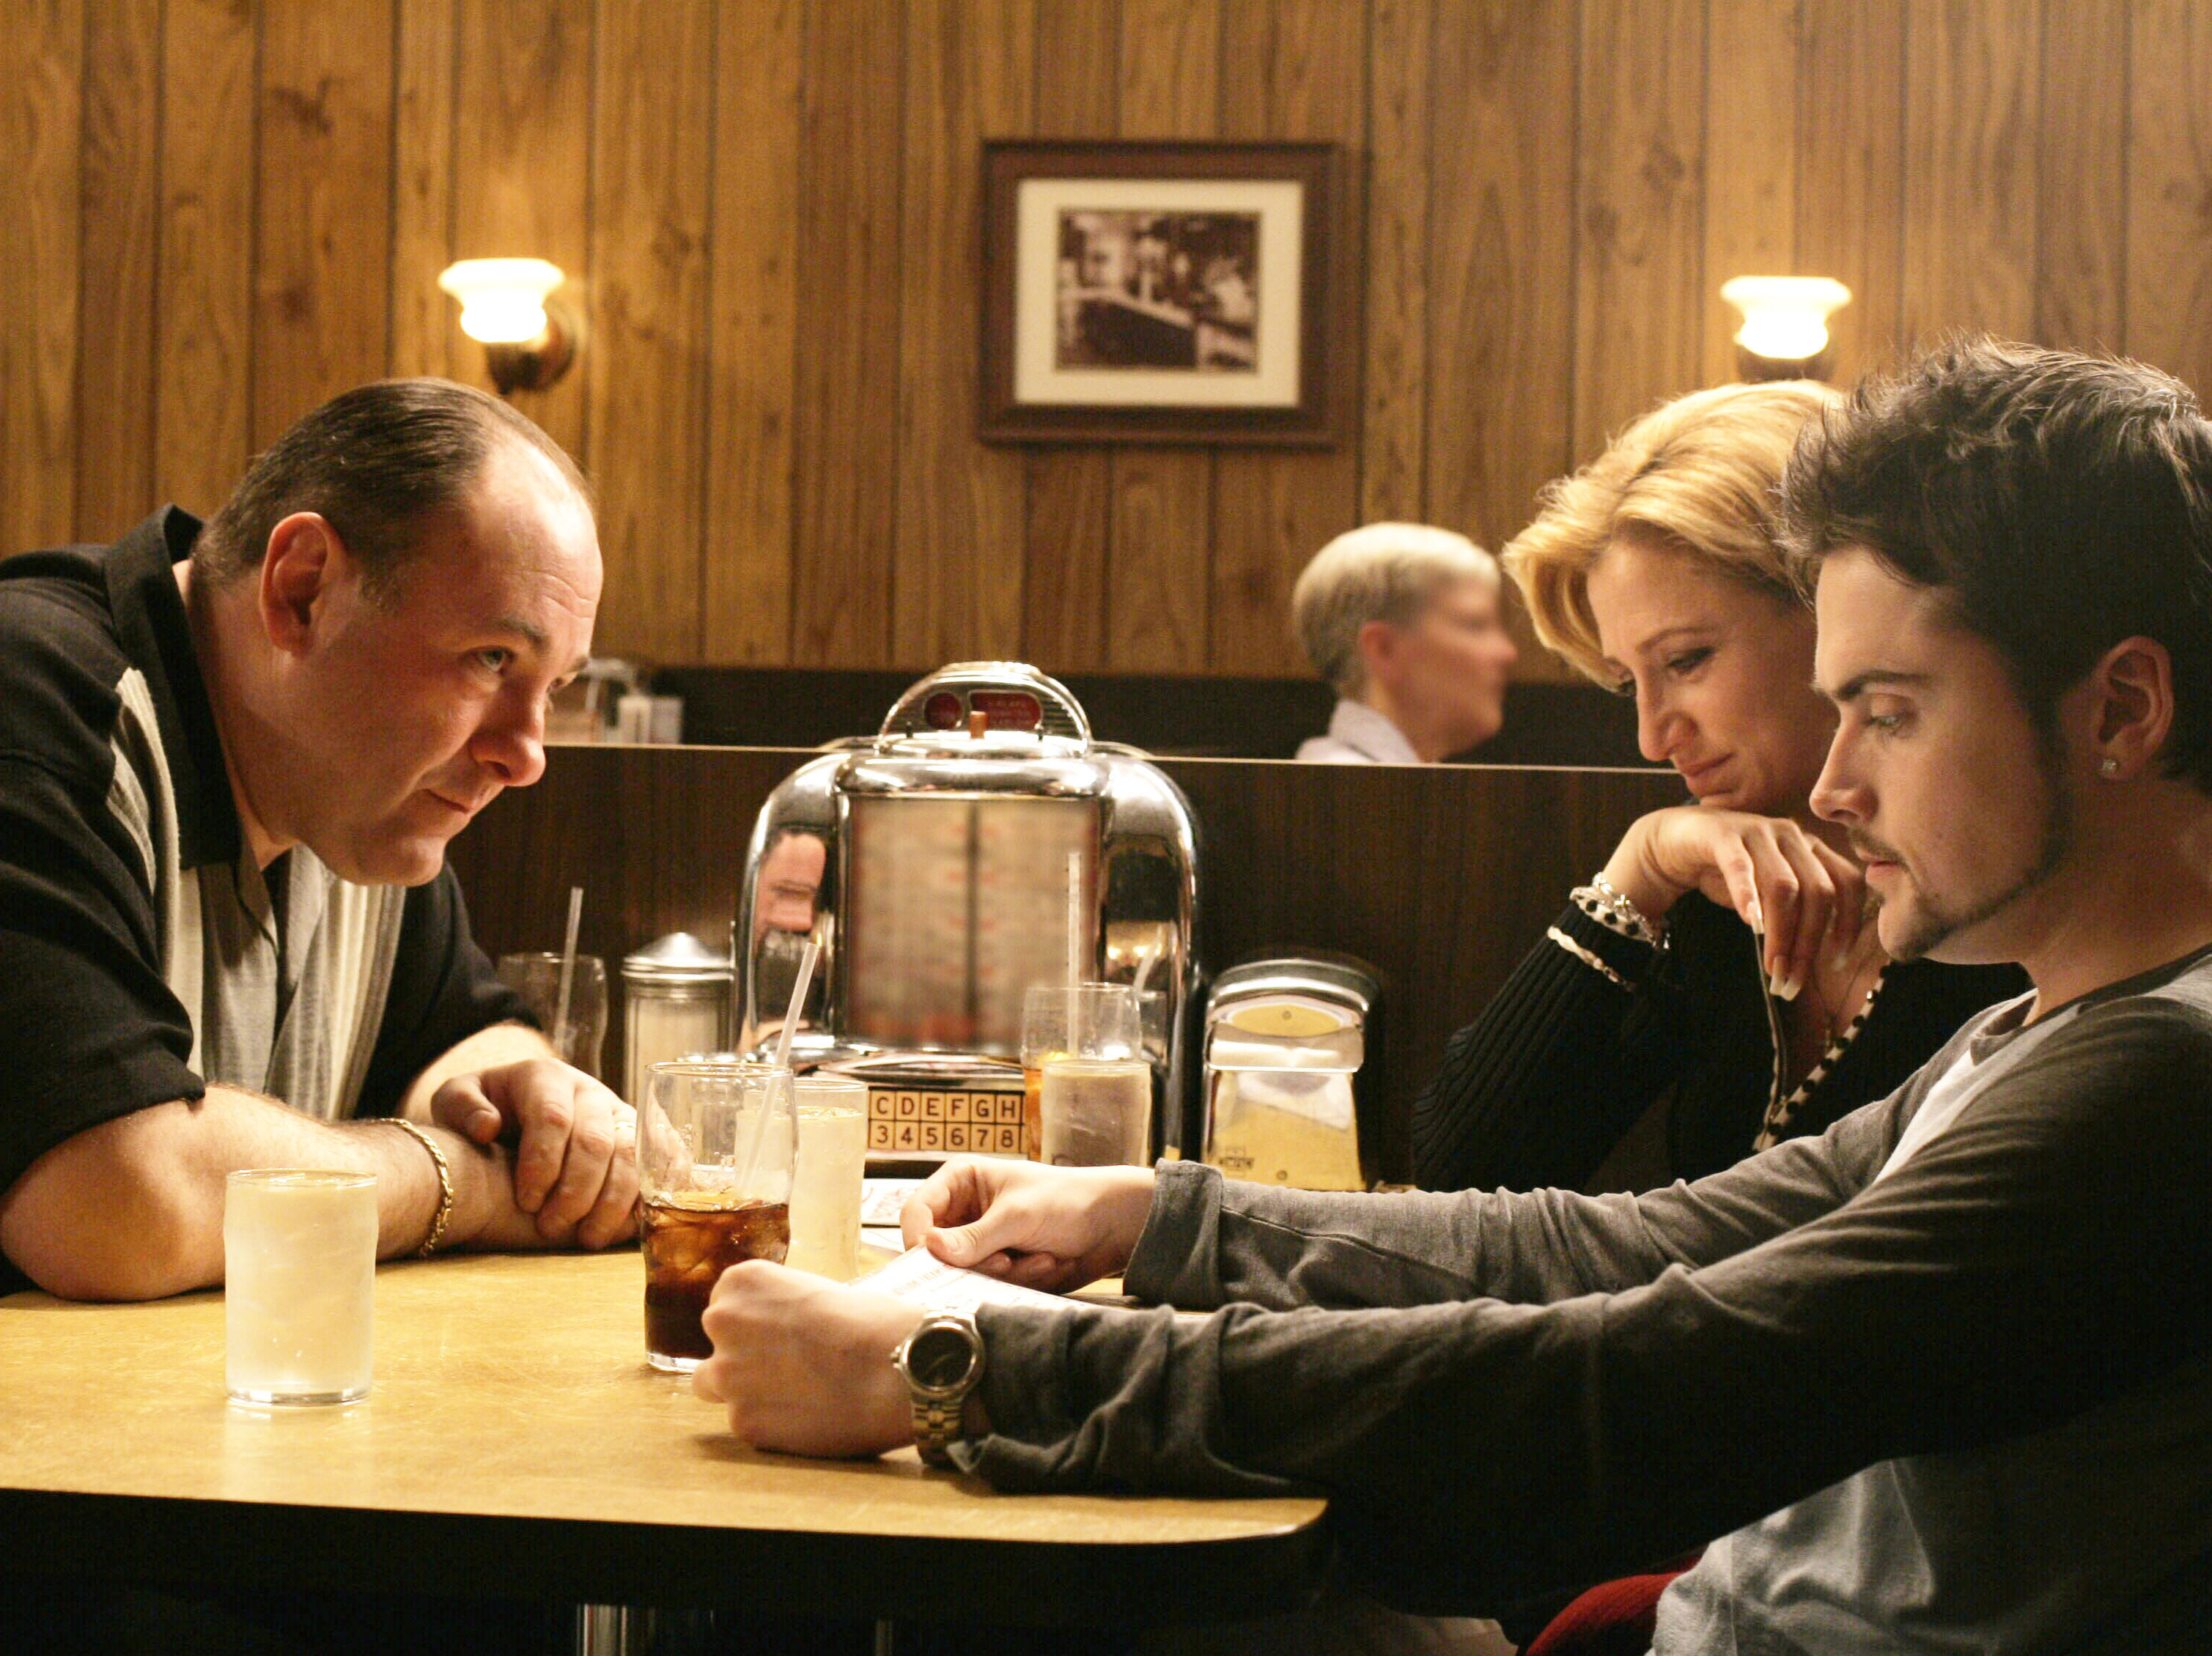 Don't stop believin': 'The Sopranos' came to an iconic end with the abrupt cut to black in 'Made in America'